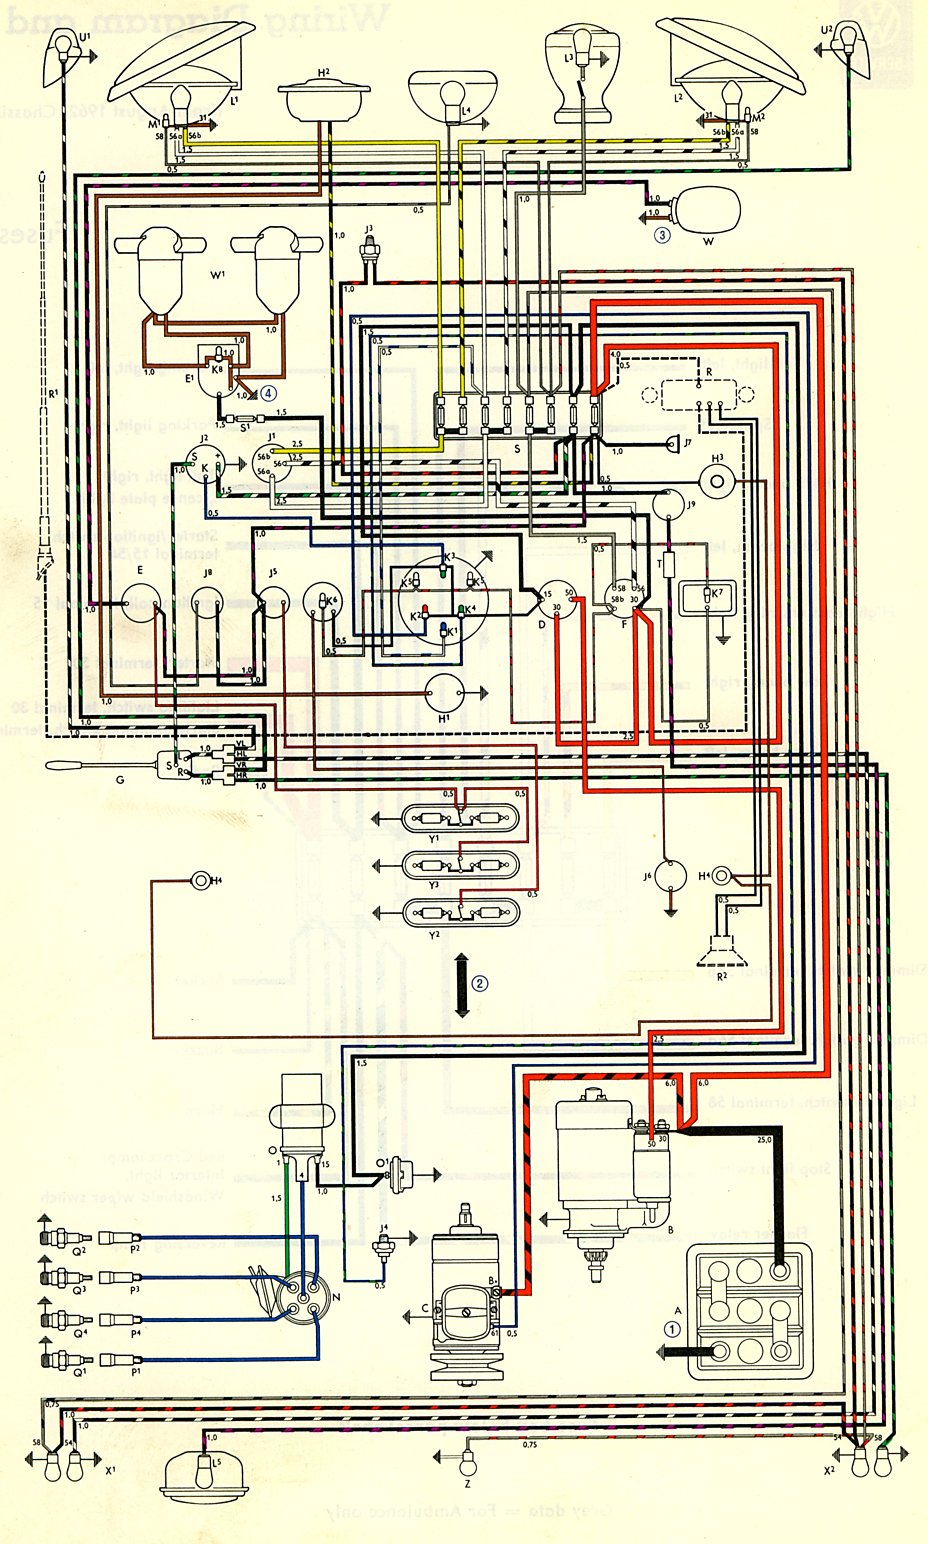 bus_63 1963 bus wiring diagram thegoldenbug com 72 vw bus wiring diagram at alyssarenee.co